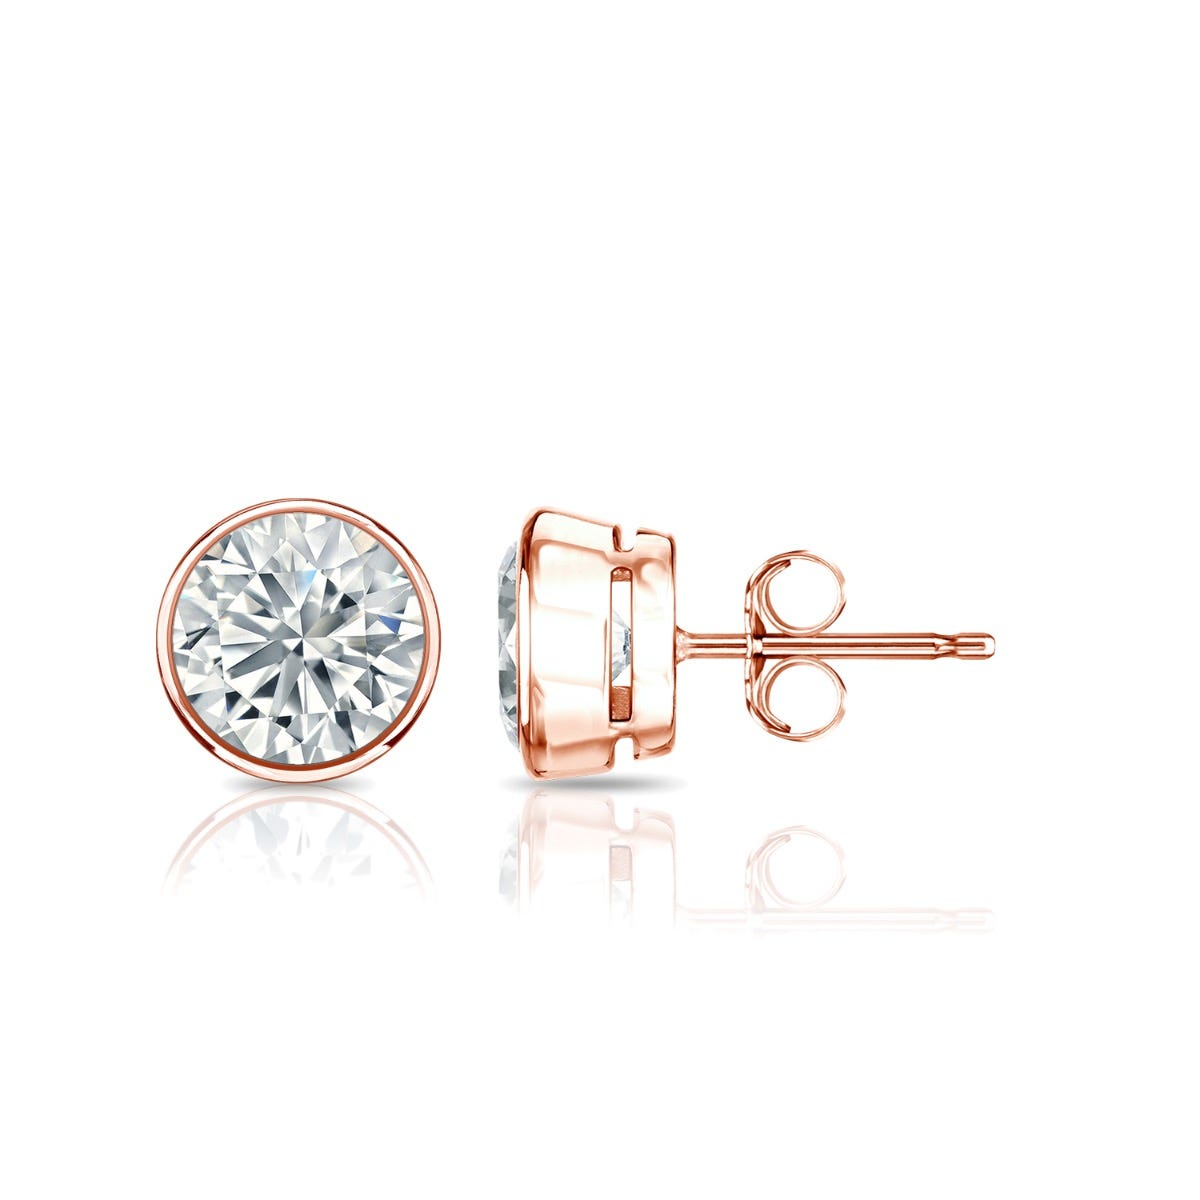 Diamond Round Bezel-Set 1ctw. Solitaire Stud (IJ-I2) Earrings in 14K Rose Gold